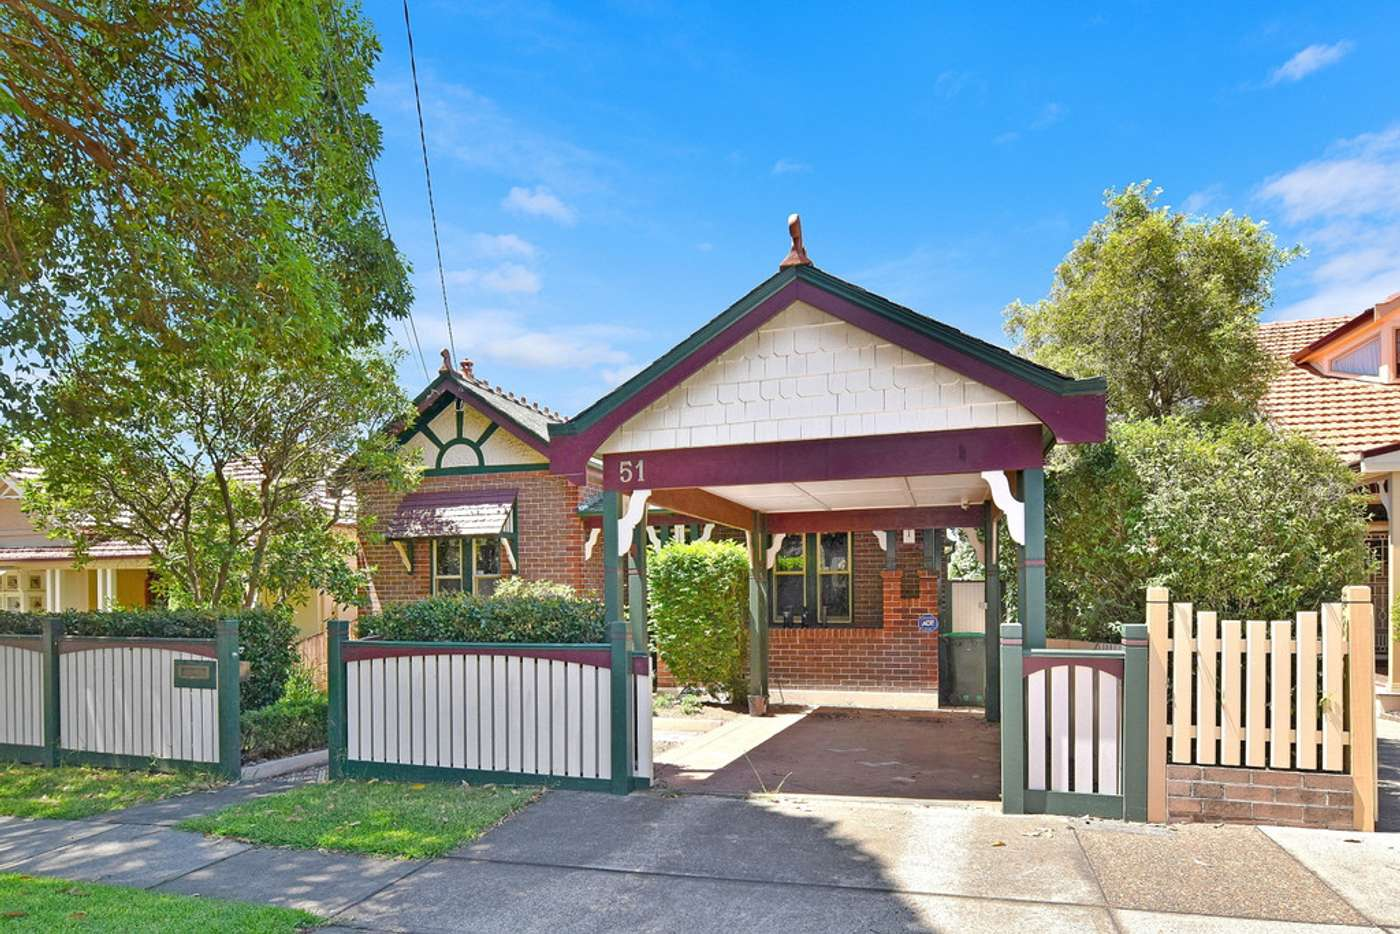 Main view of Homely house listing, 51 Cormiston Ave, Concord NSW 2137